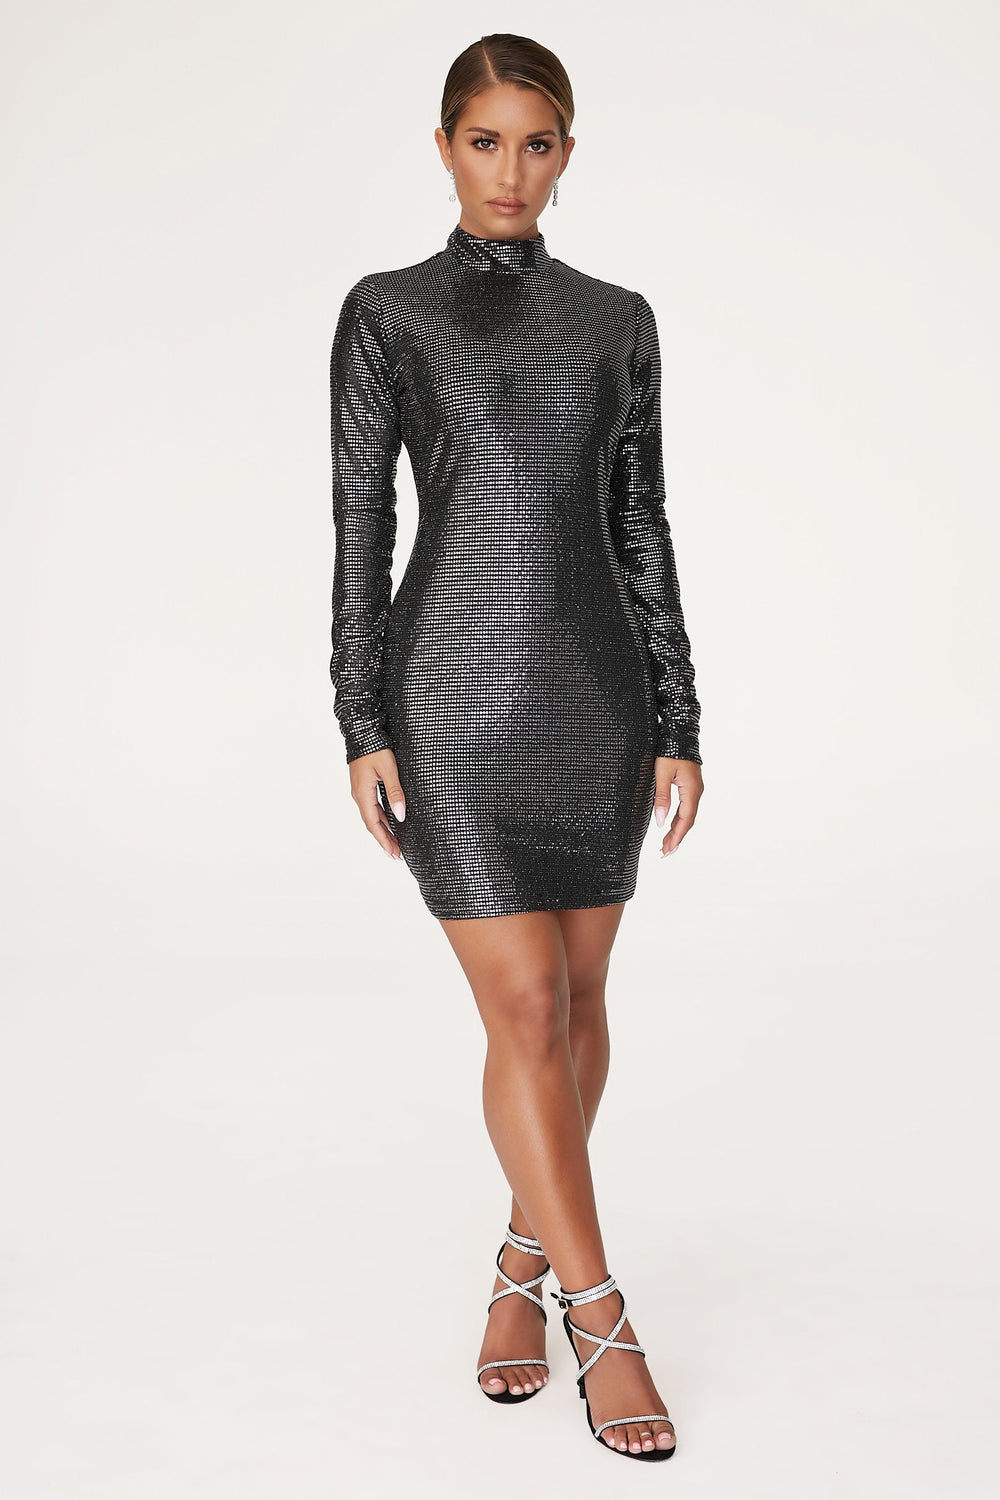 Gianna High Neck Long Sleeve Dress - Black - MESHKI ?id=12565657288779